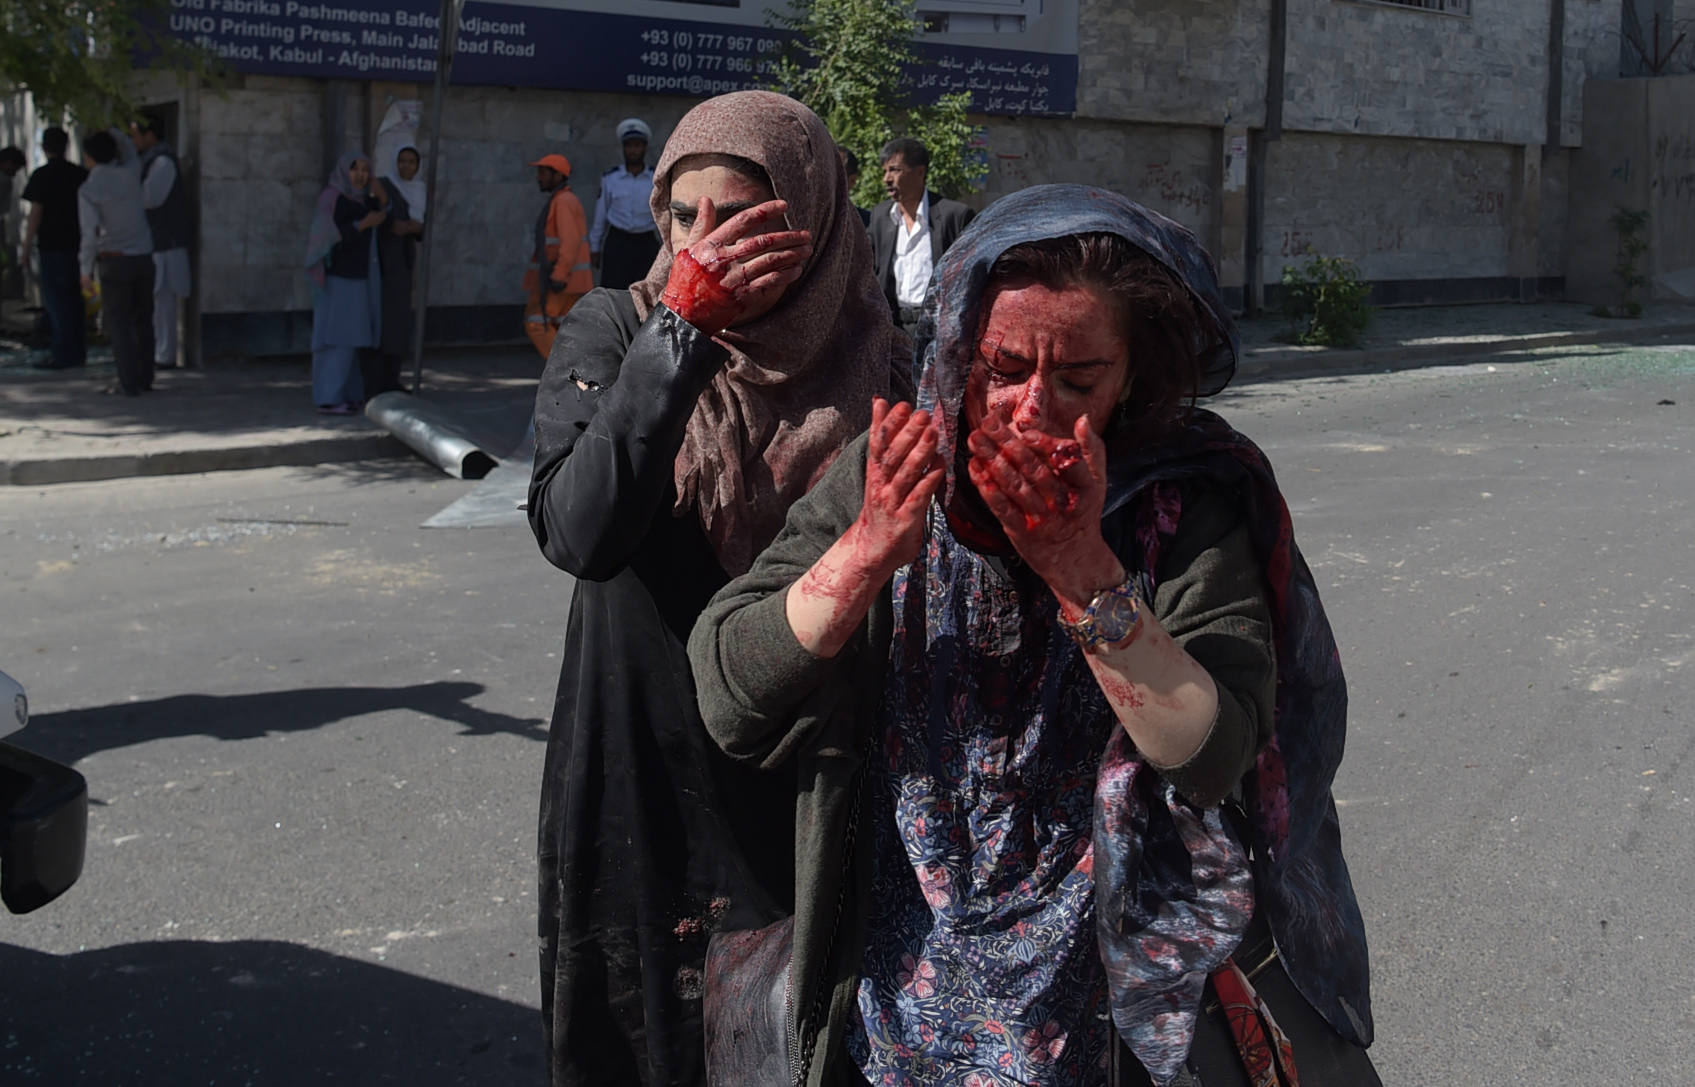 Wounded women gesture at the site of a car bombing in Kabul last May 31. A massive blast rocked Kabul's diplomatic quarter during the morning rush hour that day, killing 150 people. [Shah Marai/AFP]